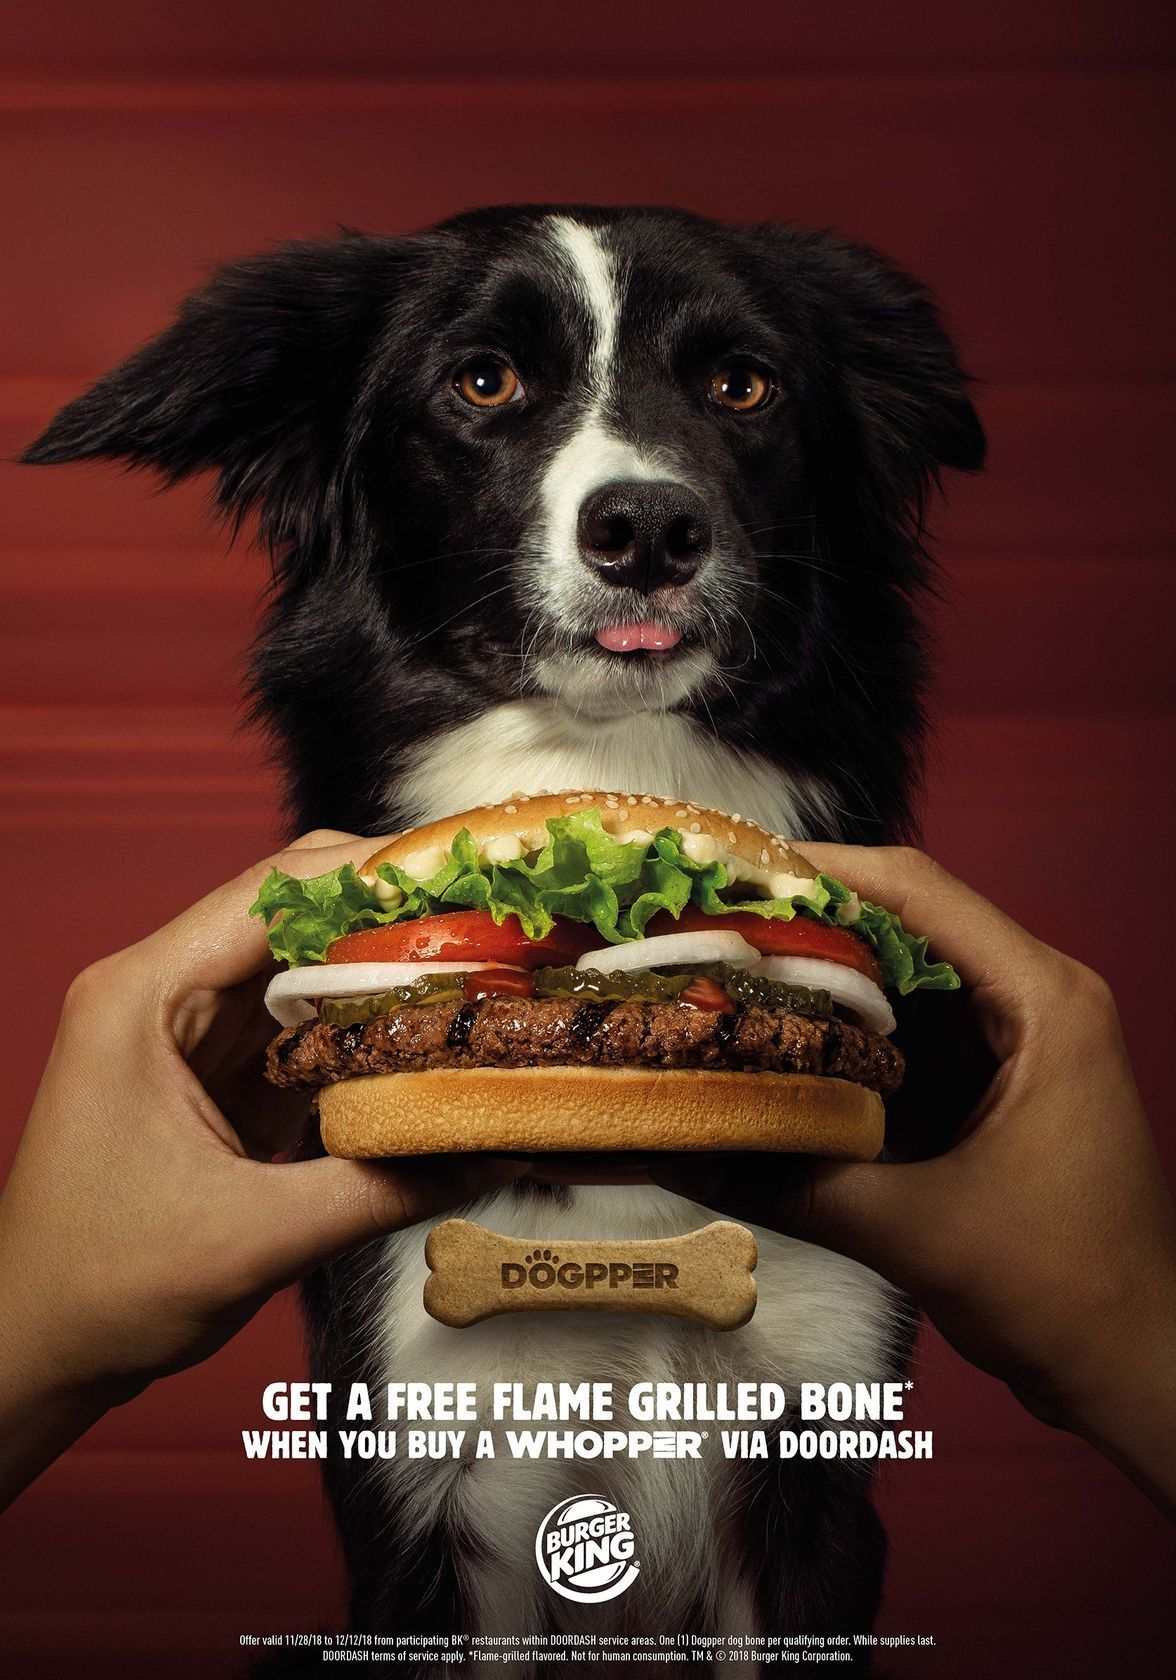 Burger King Is Going To The Dogs And Giving Away Free Flame